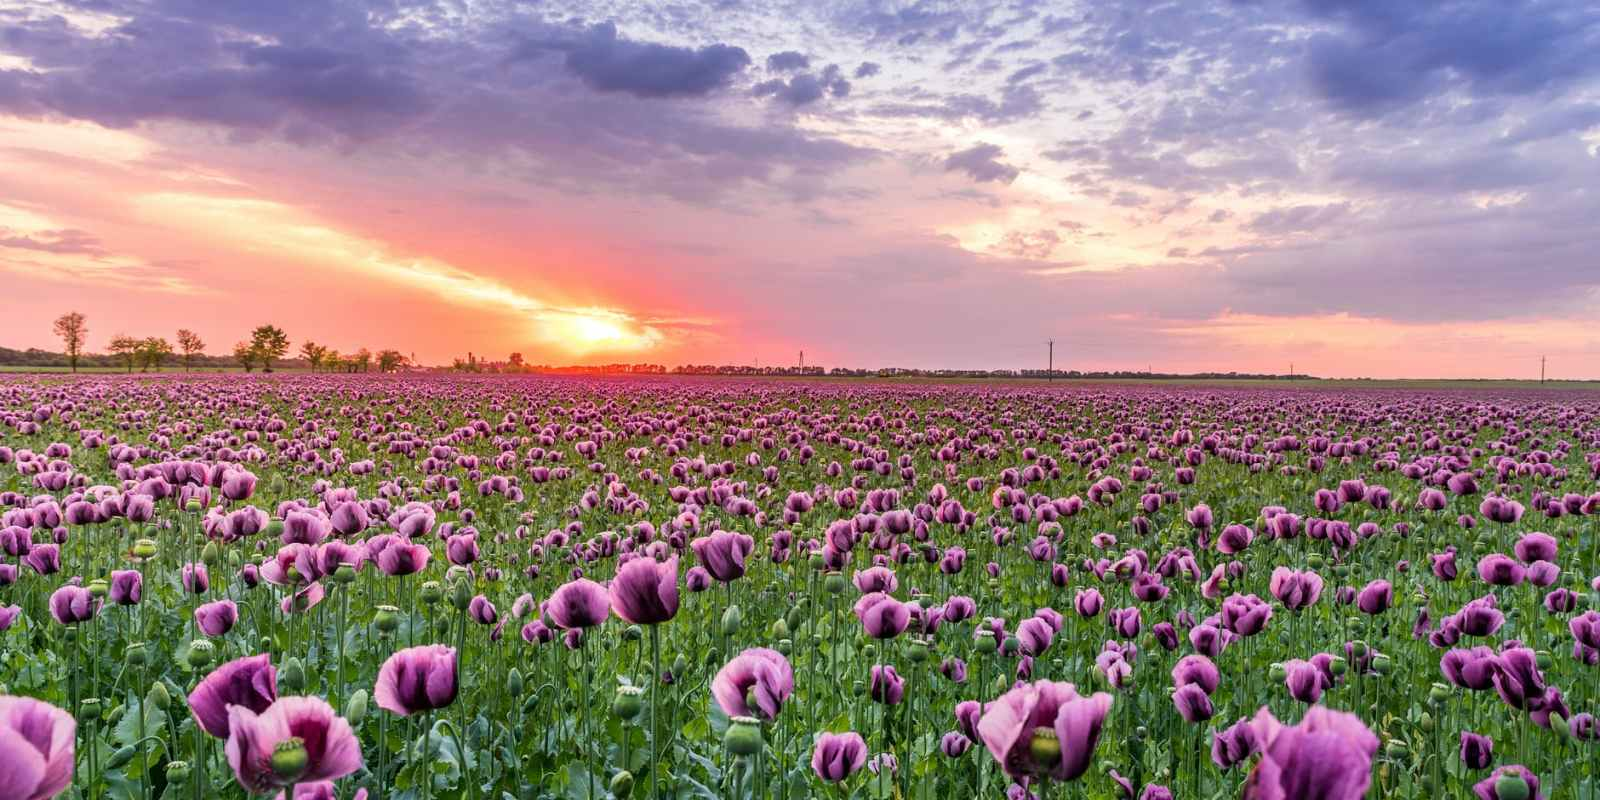 purple petaled flower field